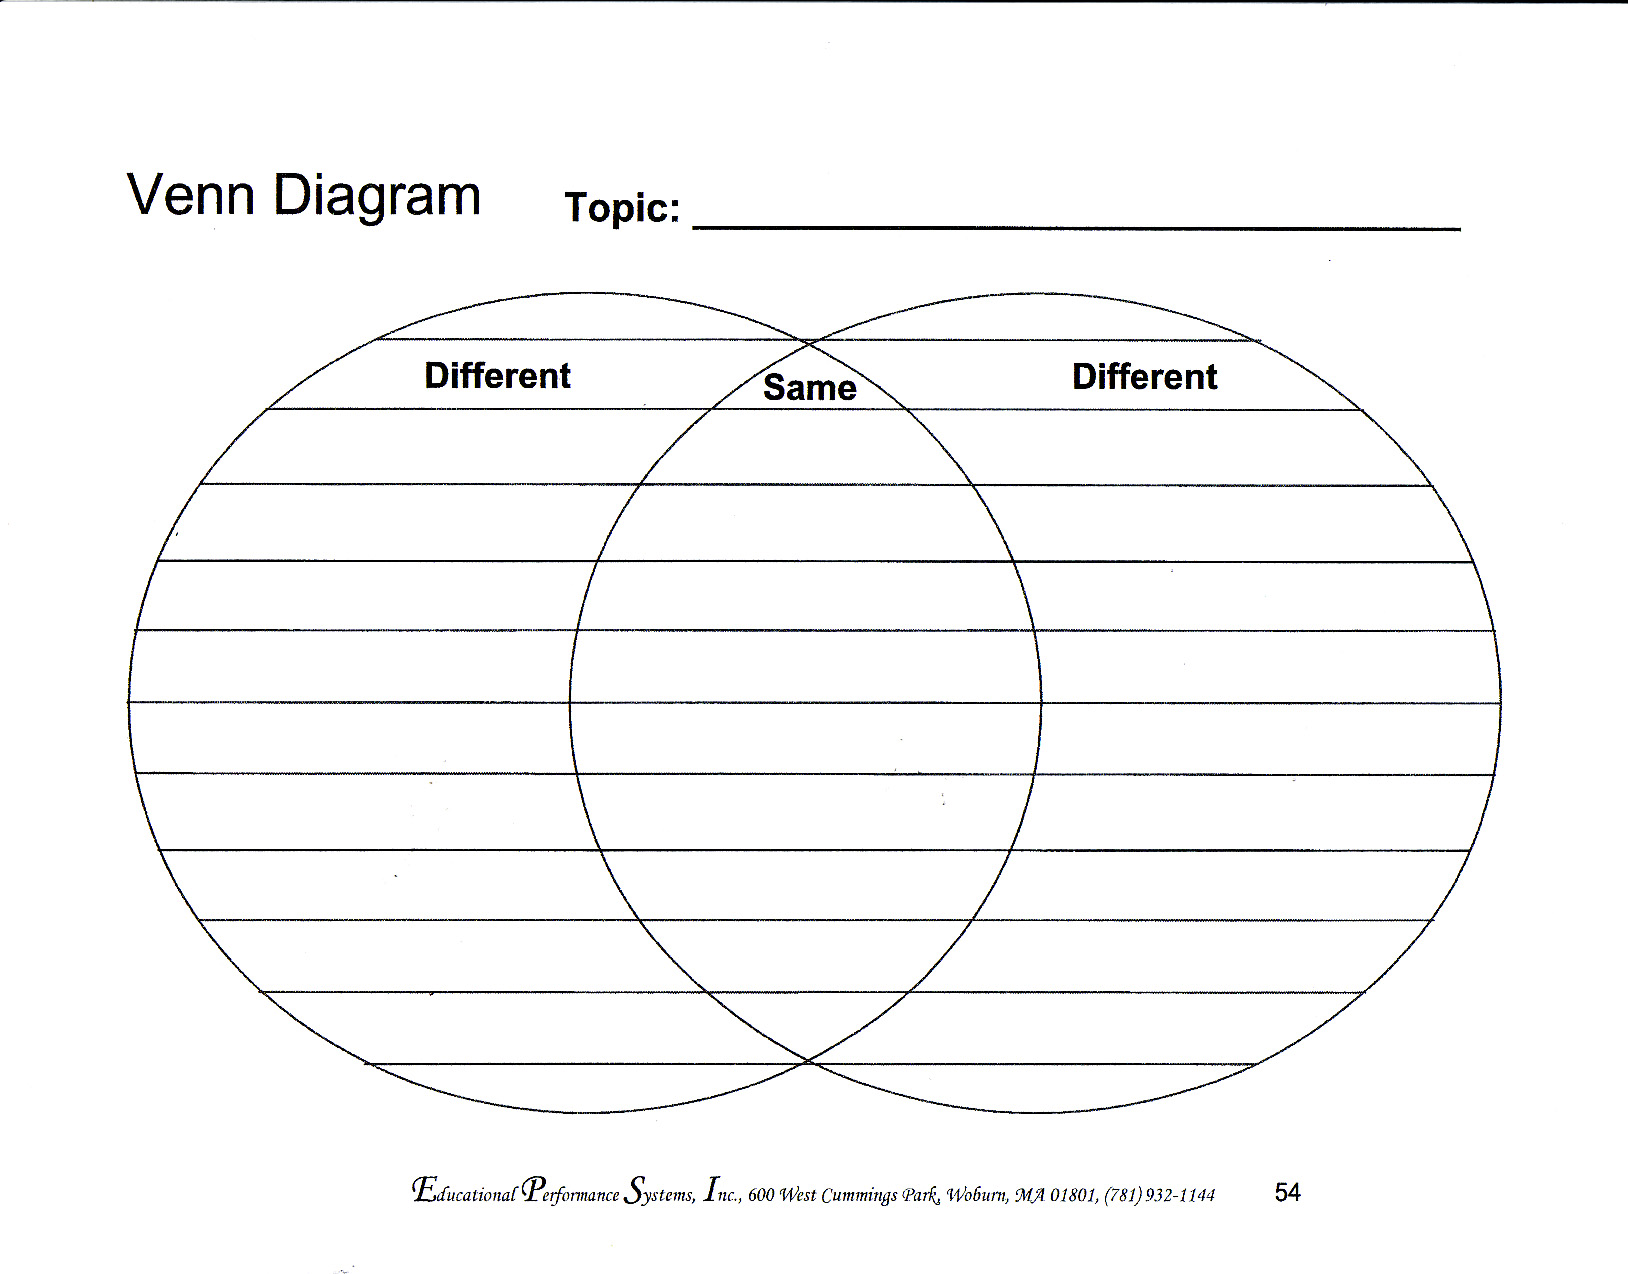 graphic organizers and literature circles |